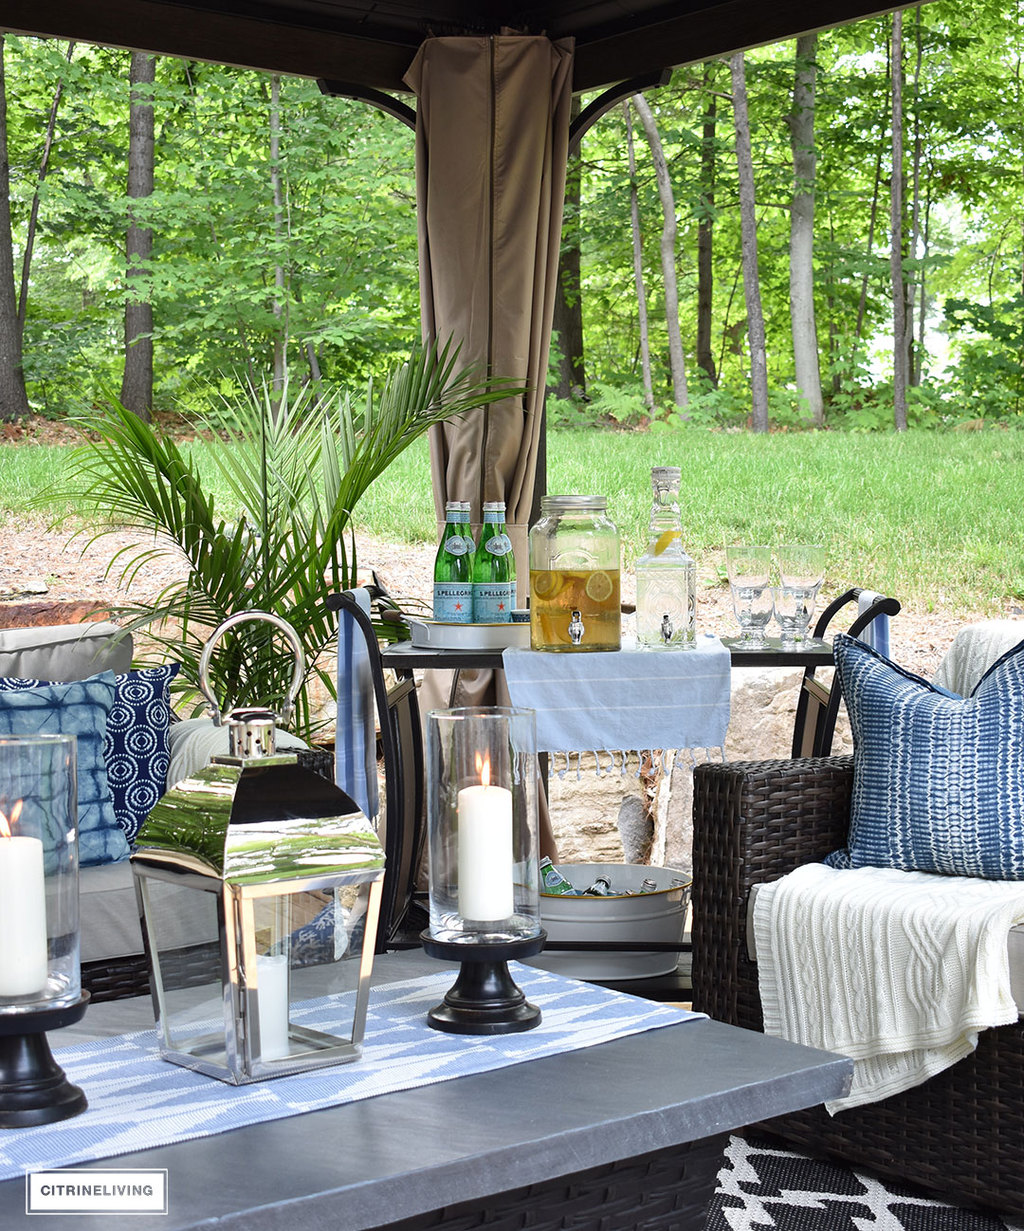 Create the perfect lounging area in your backyard with a beautiful covered gazebo, with added height for an airy, open feel. A gorgeous fire table, solar chandelier, resin wicker furniture, bar cart and layered accessories create an elegant and sophisticated look.